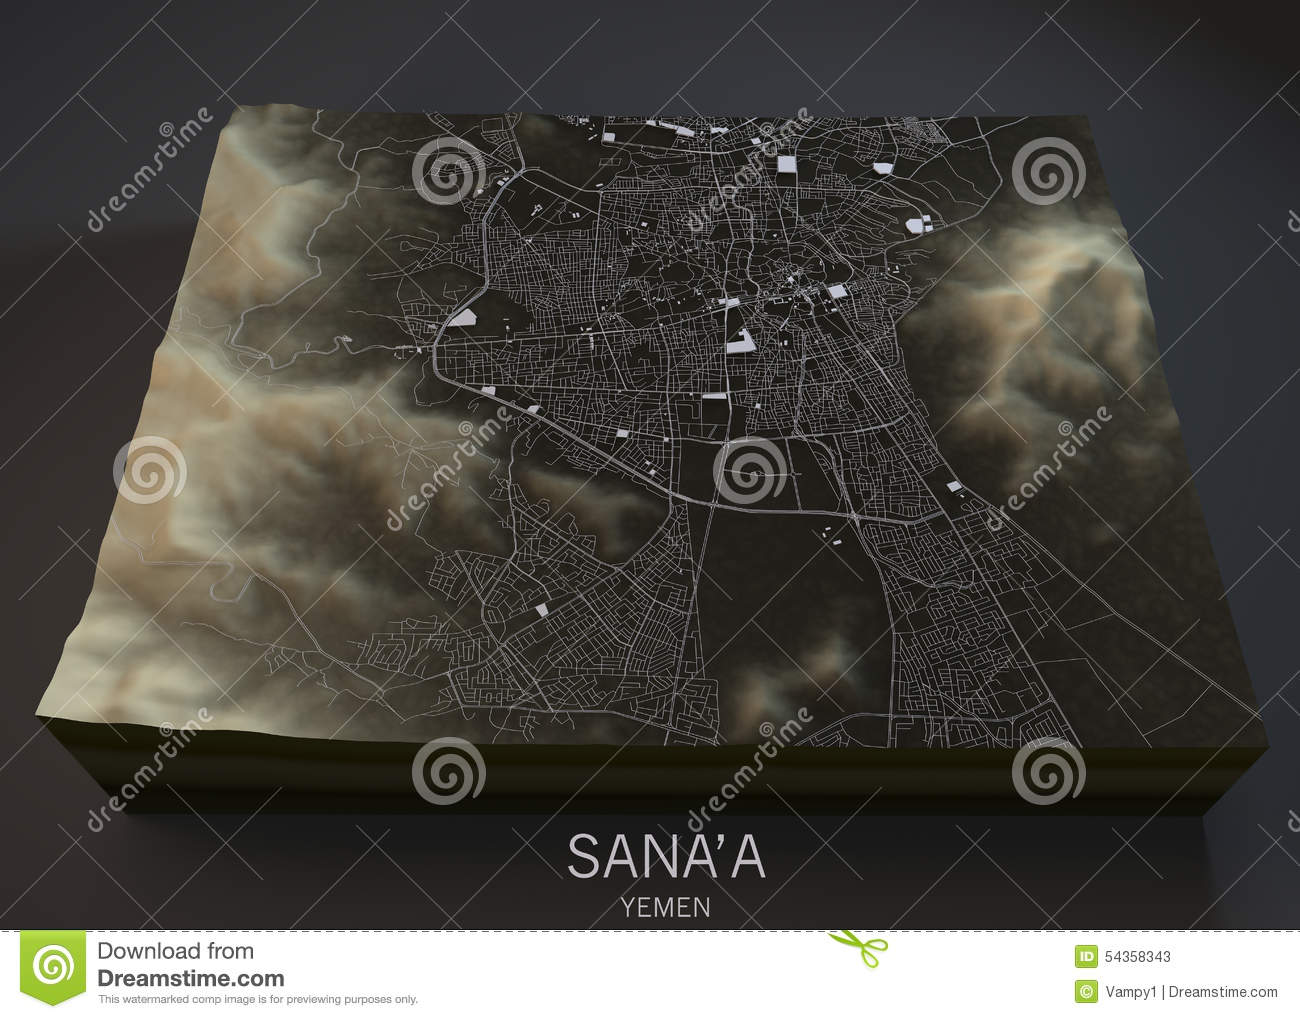 Sana'a Streets And Buildings Map Stock Illustration ... on detailed map of yemen, road map of yemen, outline map of yemen, terrain map of yemen, political map of yemen, physical map of yemen, topographic map of yemen,